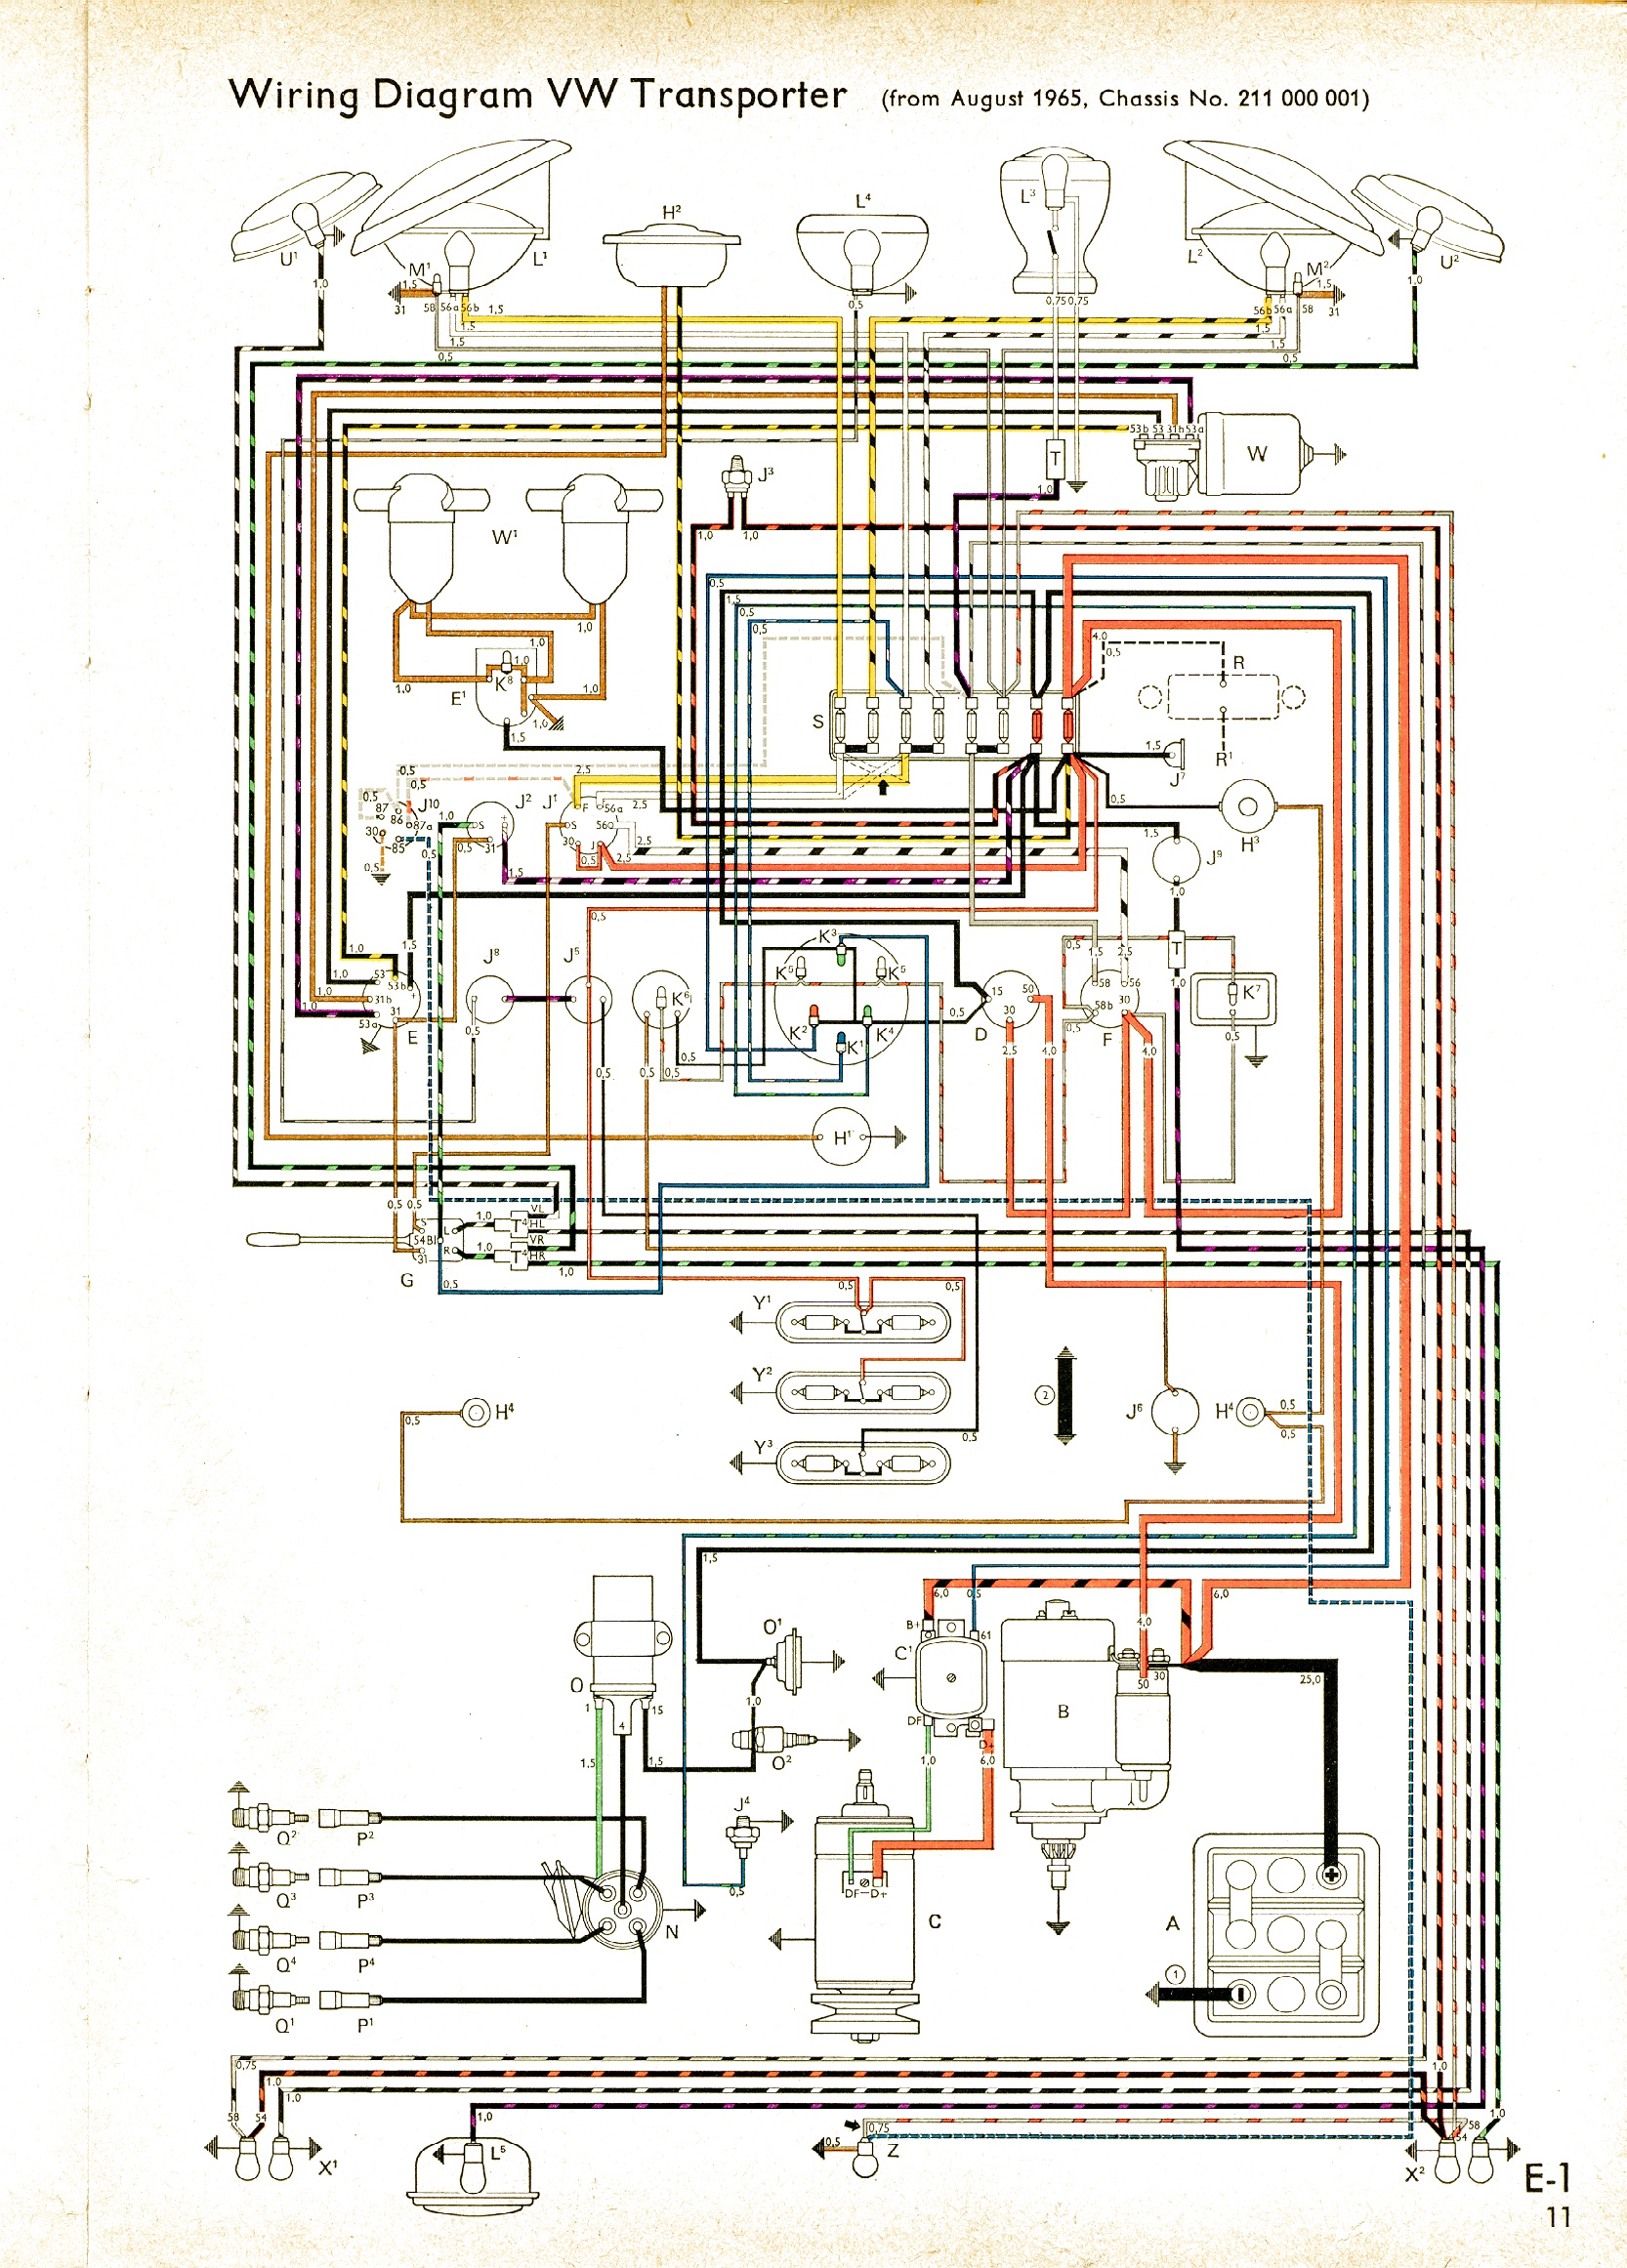 1957 vw wiring diagram wiring diagram progresif